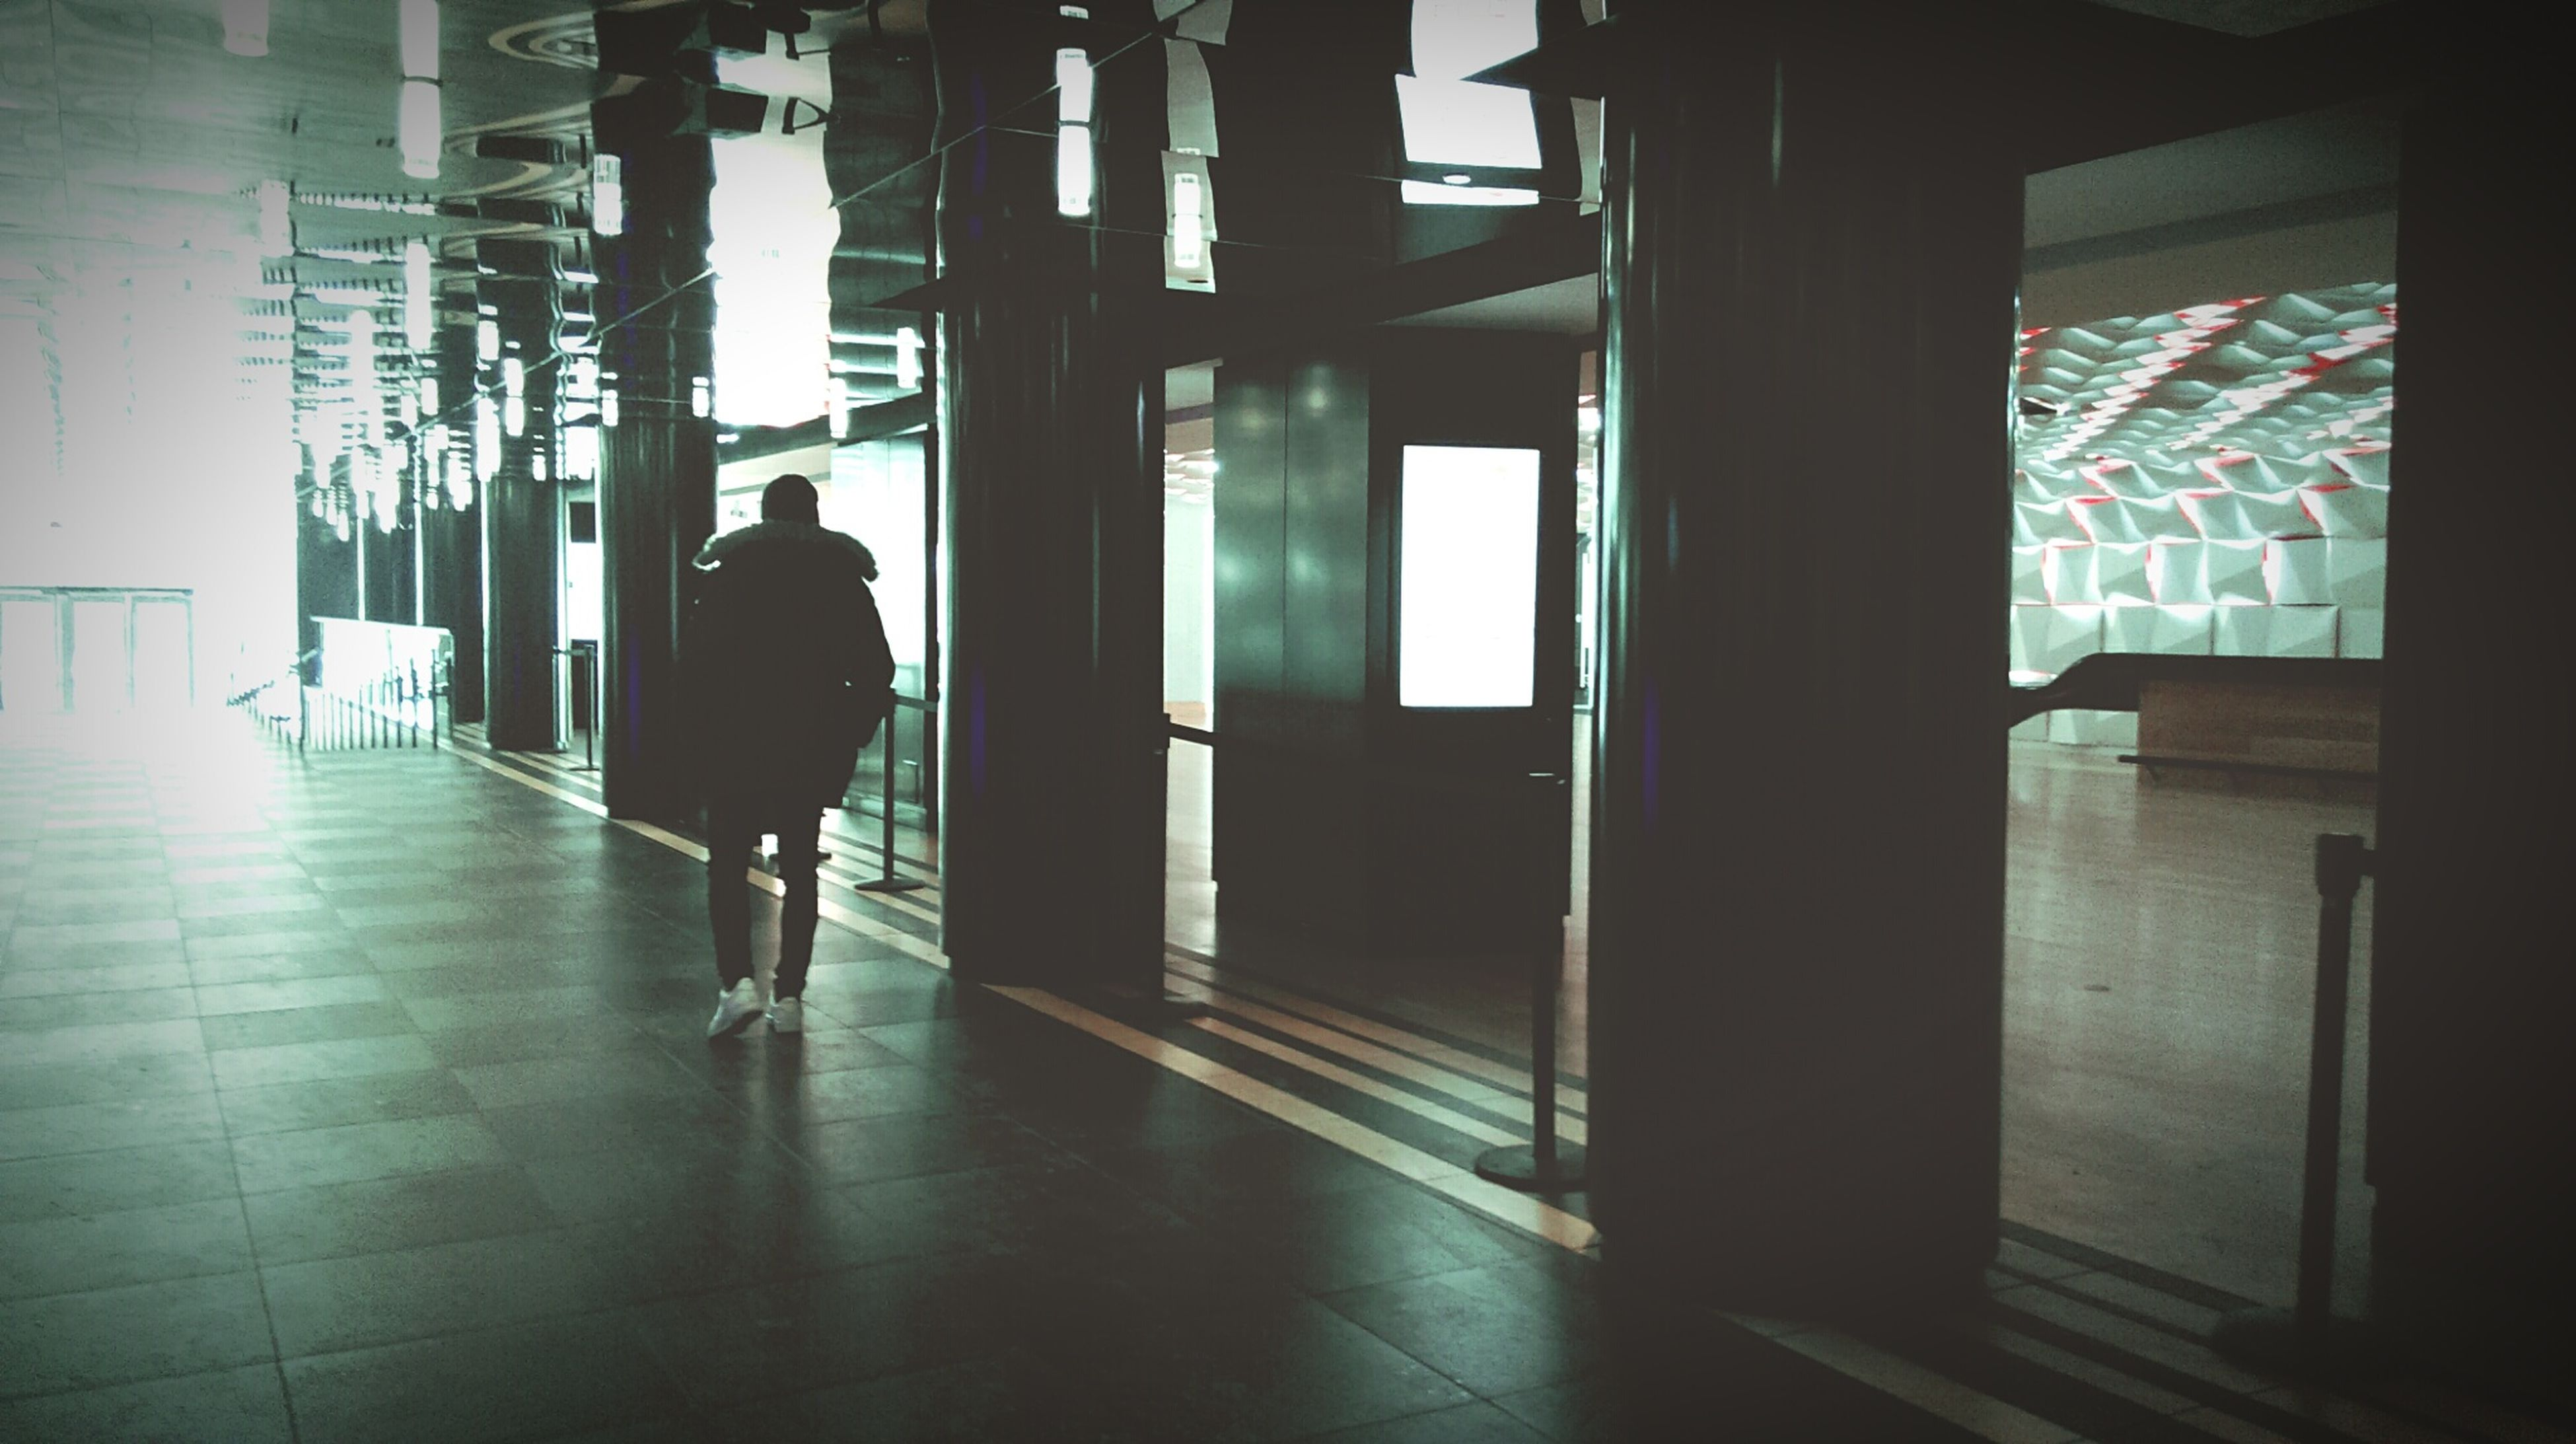 indoors, corridor, architecture, built structure, rear view, walking, men, full length, the way forward, lifestyles, silhouette, window, flooring, person, tiled floor, architectural column, unrecognizable person, sunlight